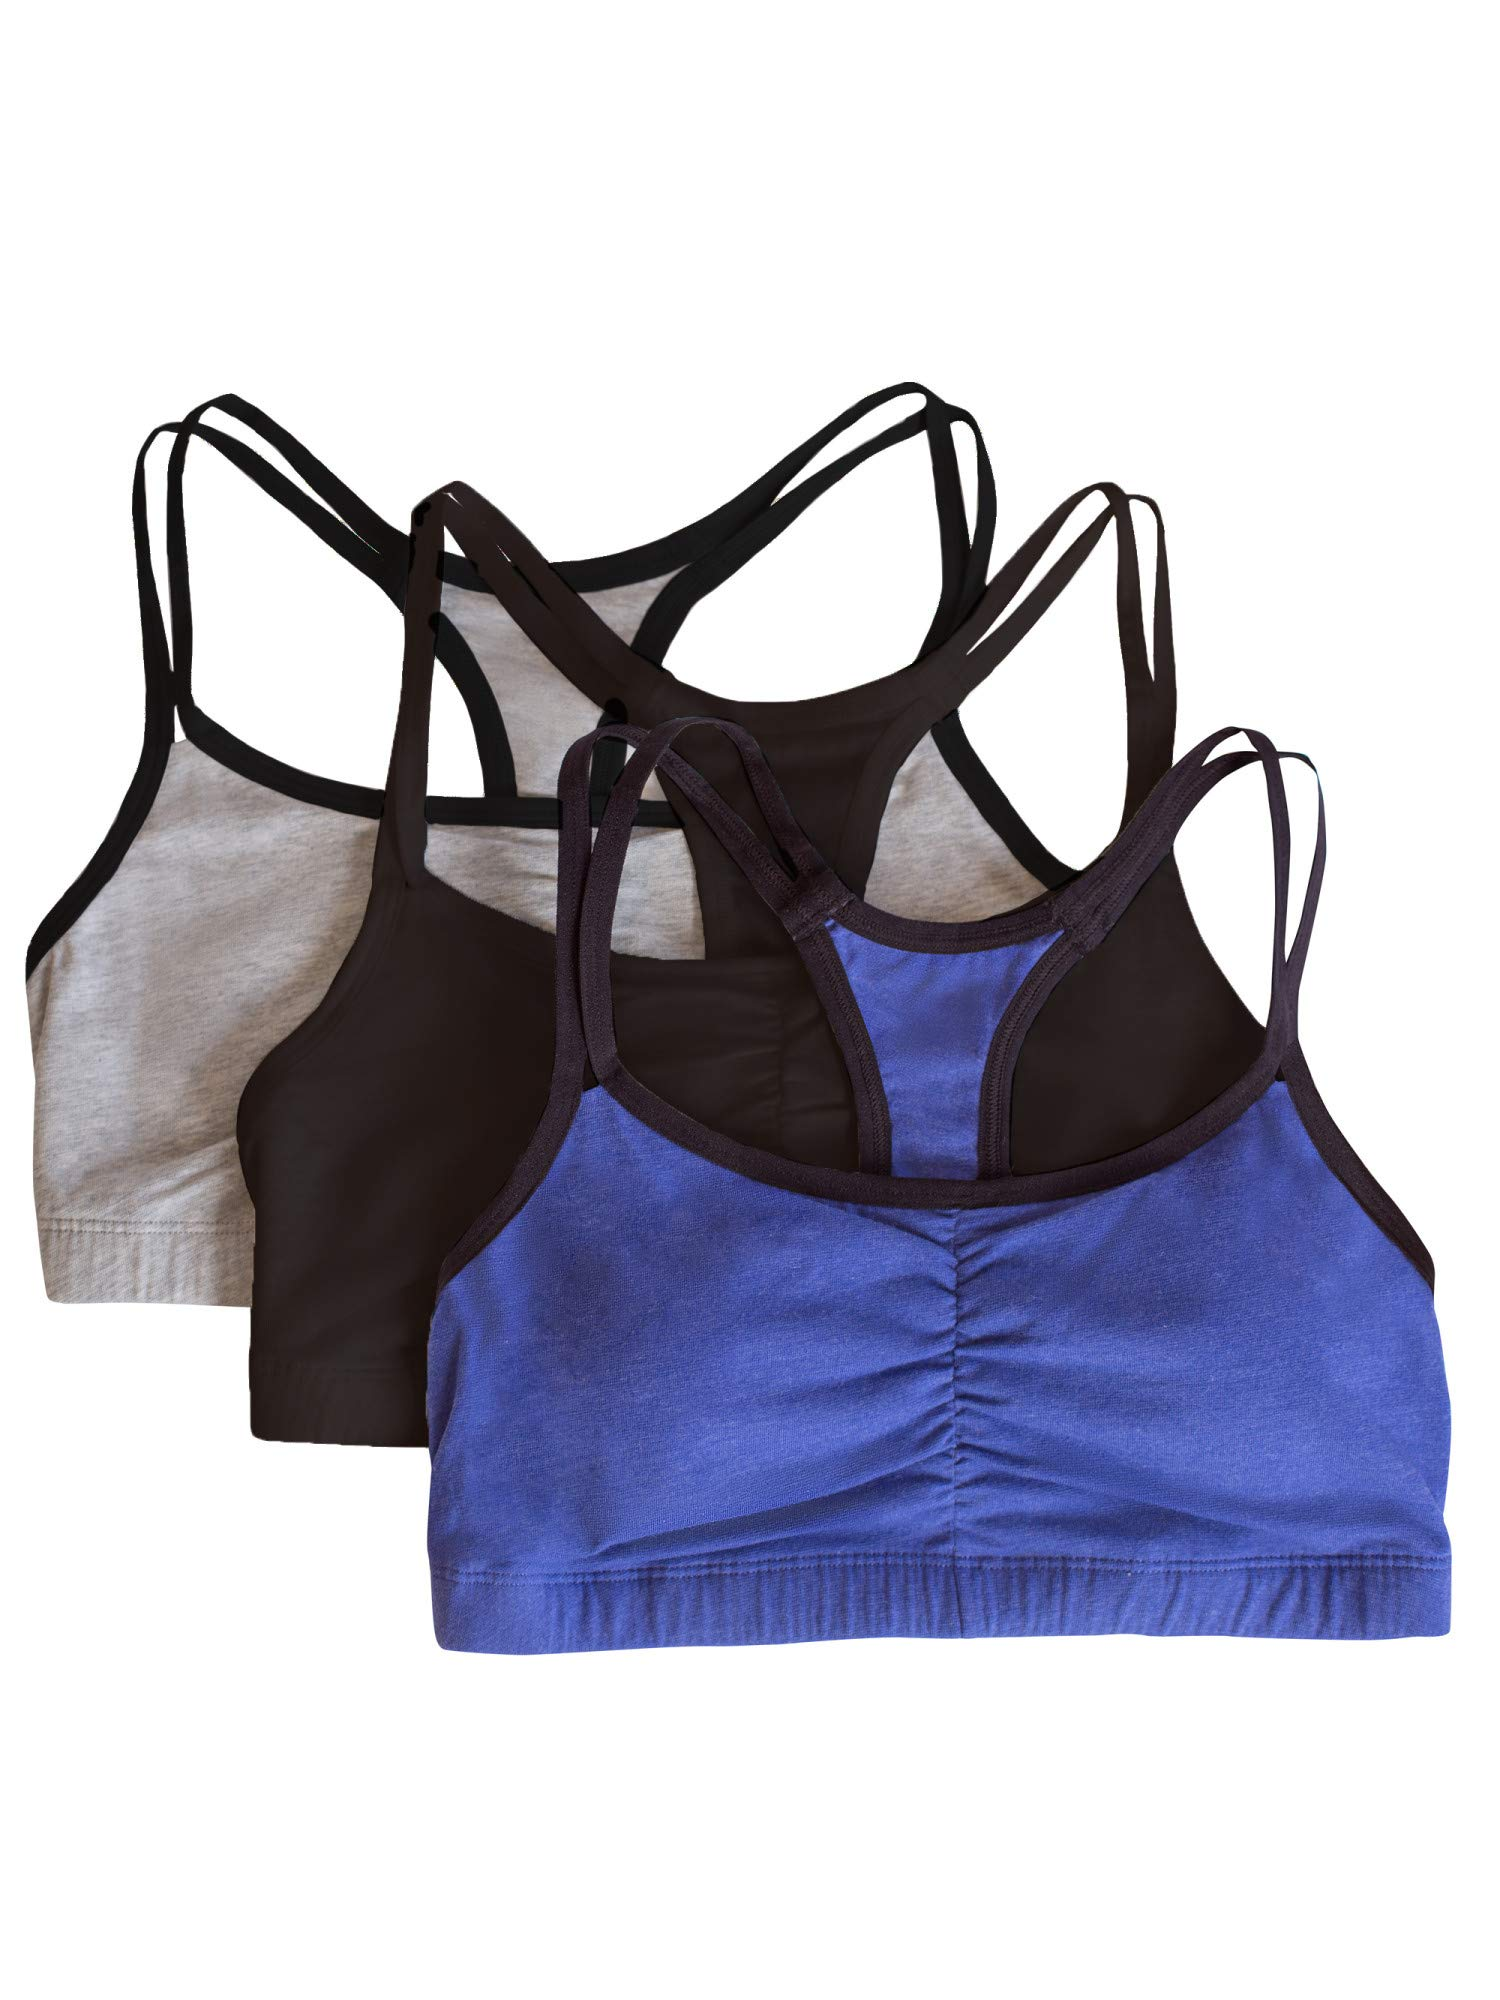 Fruit of the Loom Women's Cotton Pullover Sport Bra, Grey Navy Heather Black-3 Pack, 36 by Fruit of the Loom